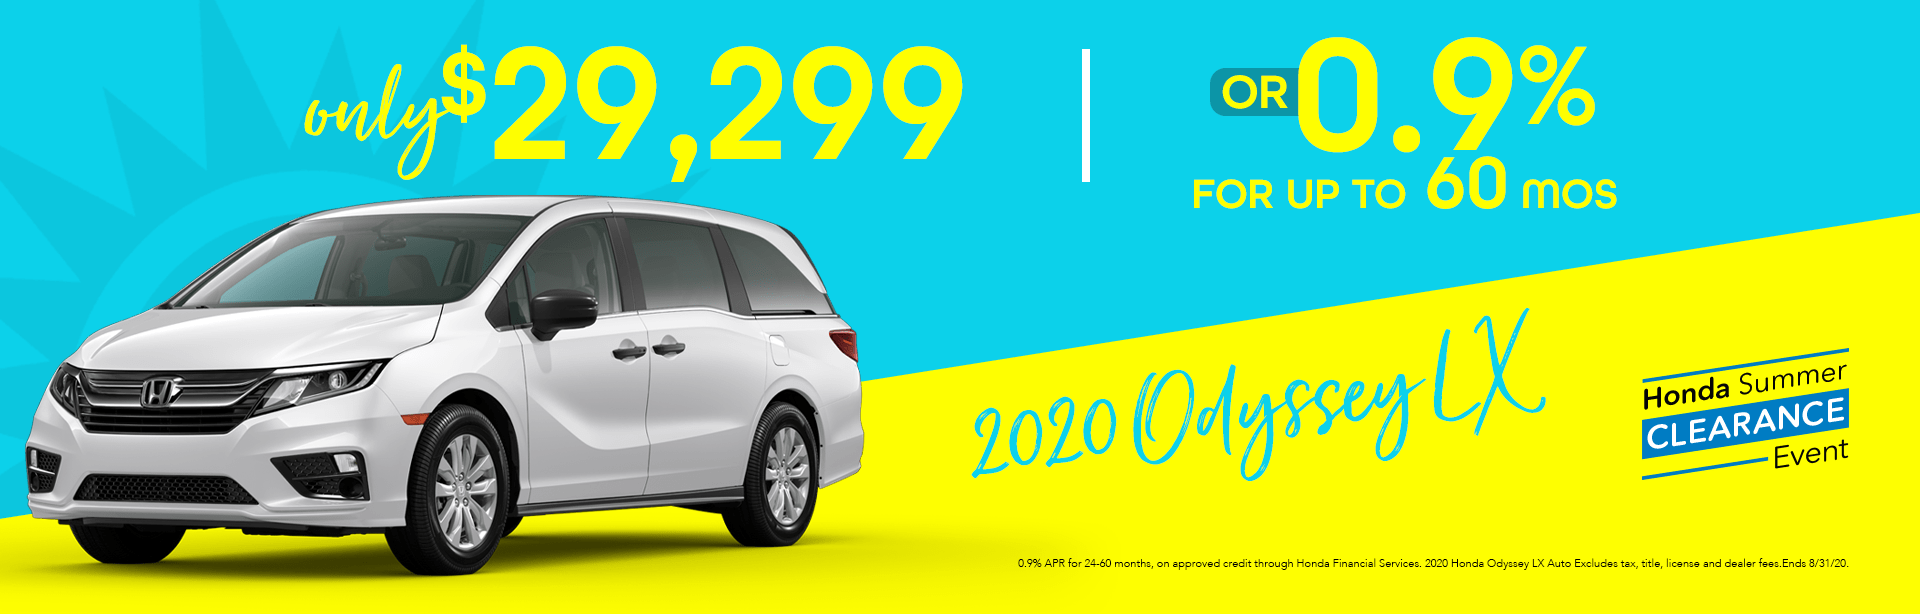 Honda Summer Clearance Event - Odyssey